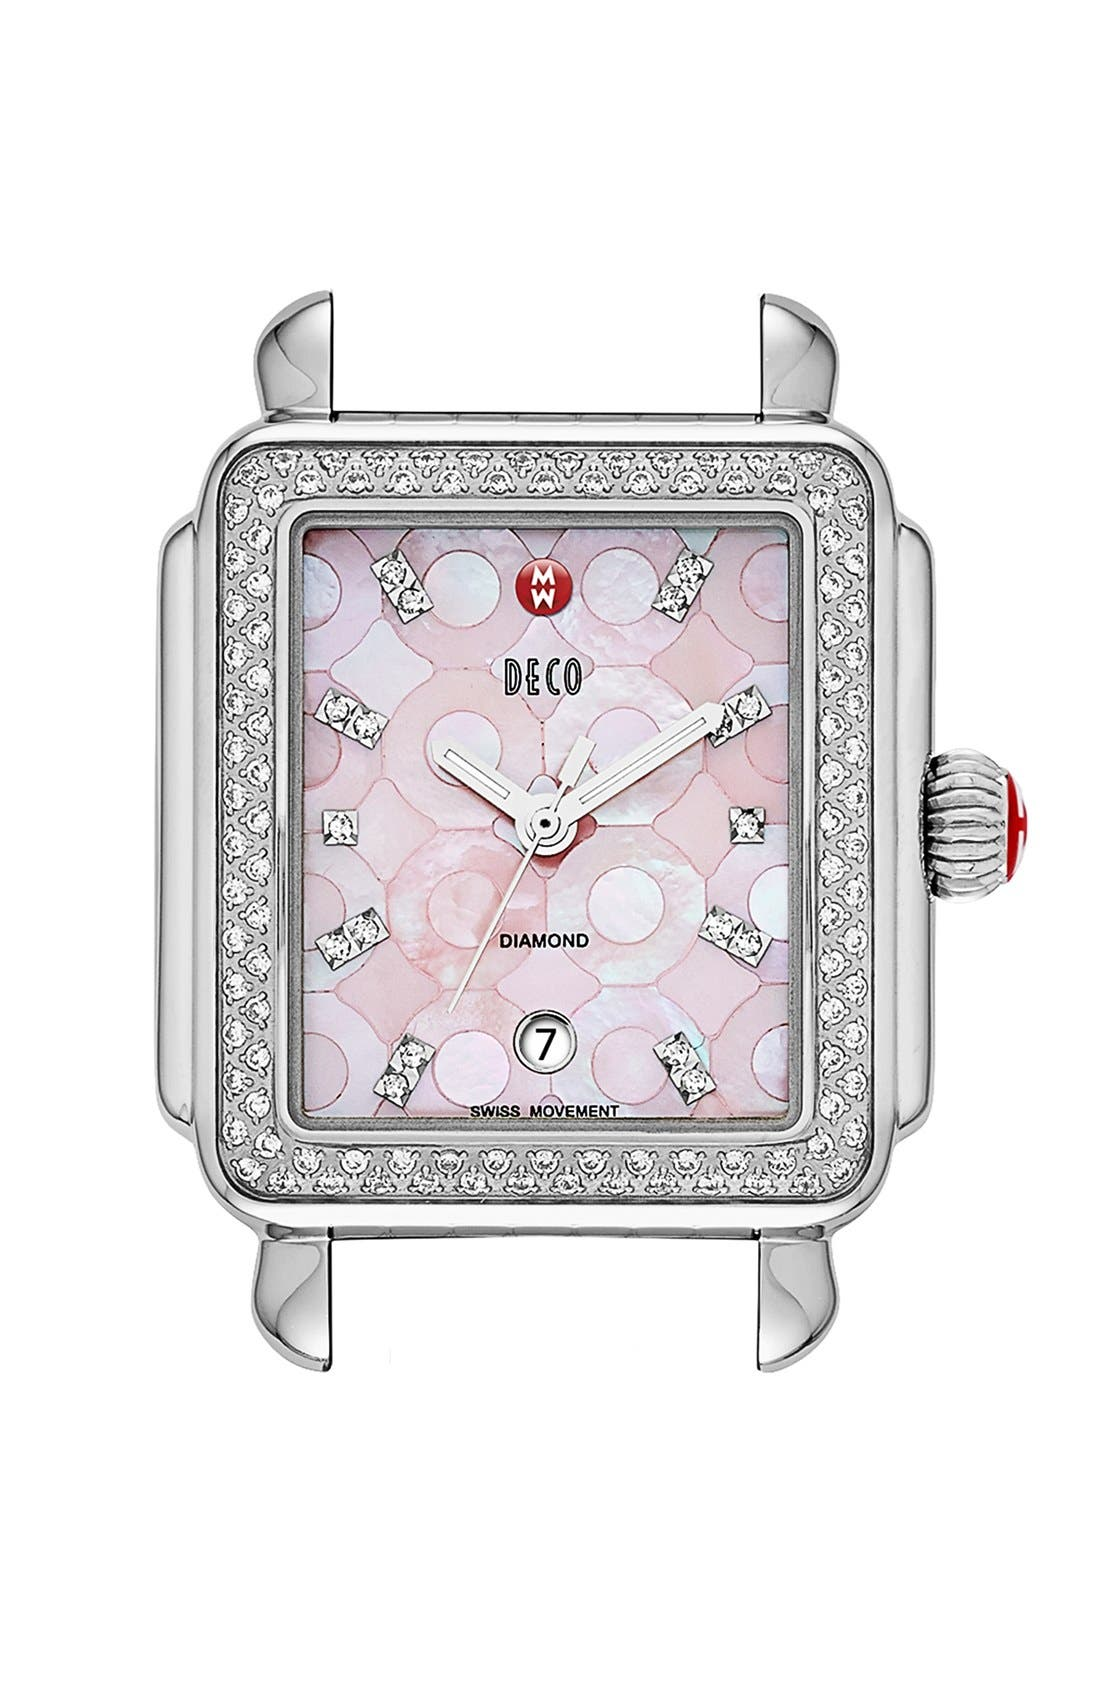 Main Image - MICHELE 'Deco Diamond' Pink Mosaic Dial Watch Case, 33mm x 35mm